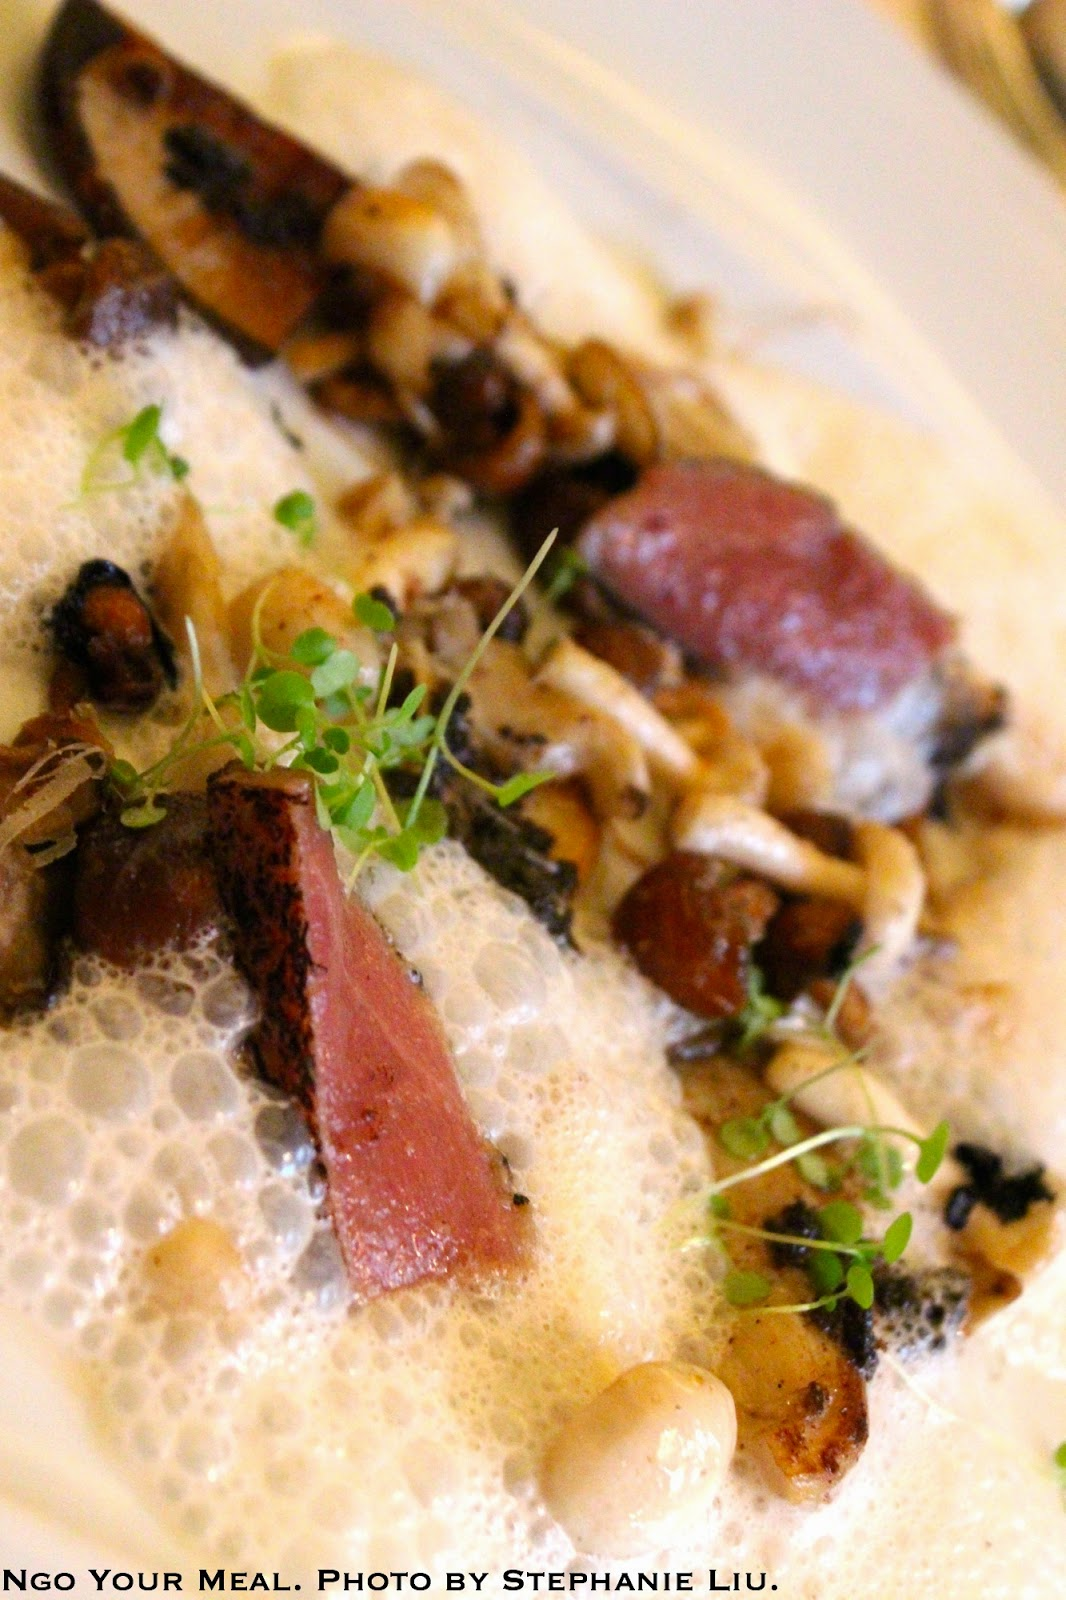 Forager's Treasure of Wild Mushrooms: Sweet Garlic, Special Spices, Grilled Toro Black Truffle Dressing at Bouley